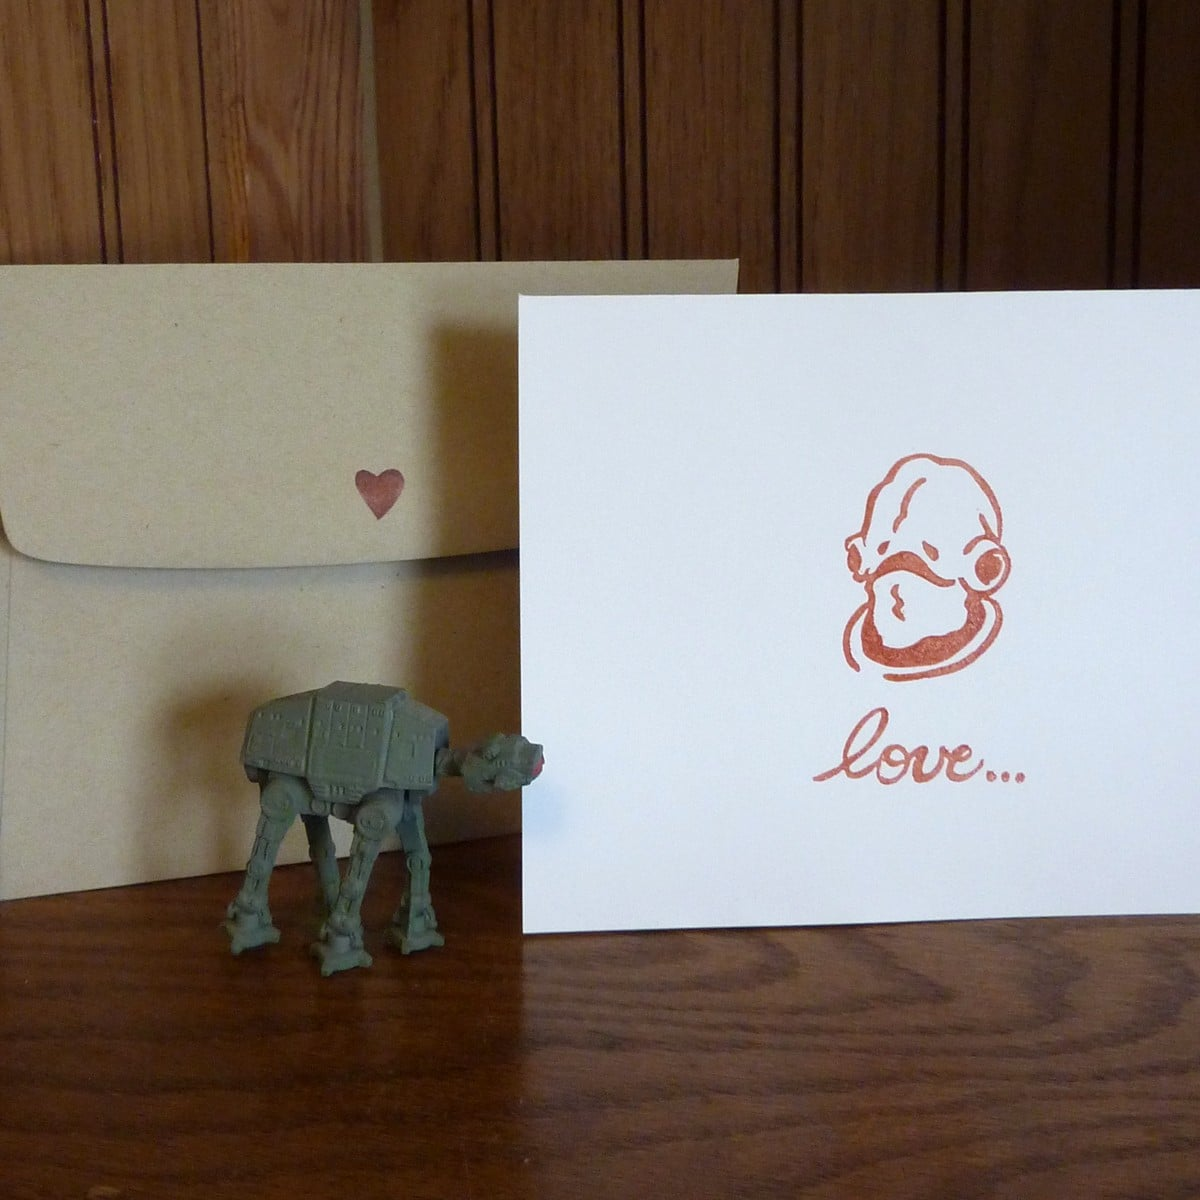 Admiral Ackbar's broken heart makes him skeptical of love ($3), but you don't have to be.